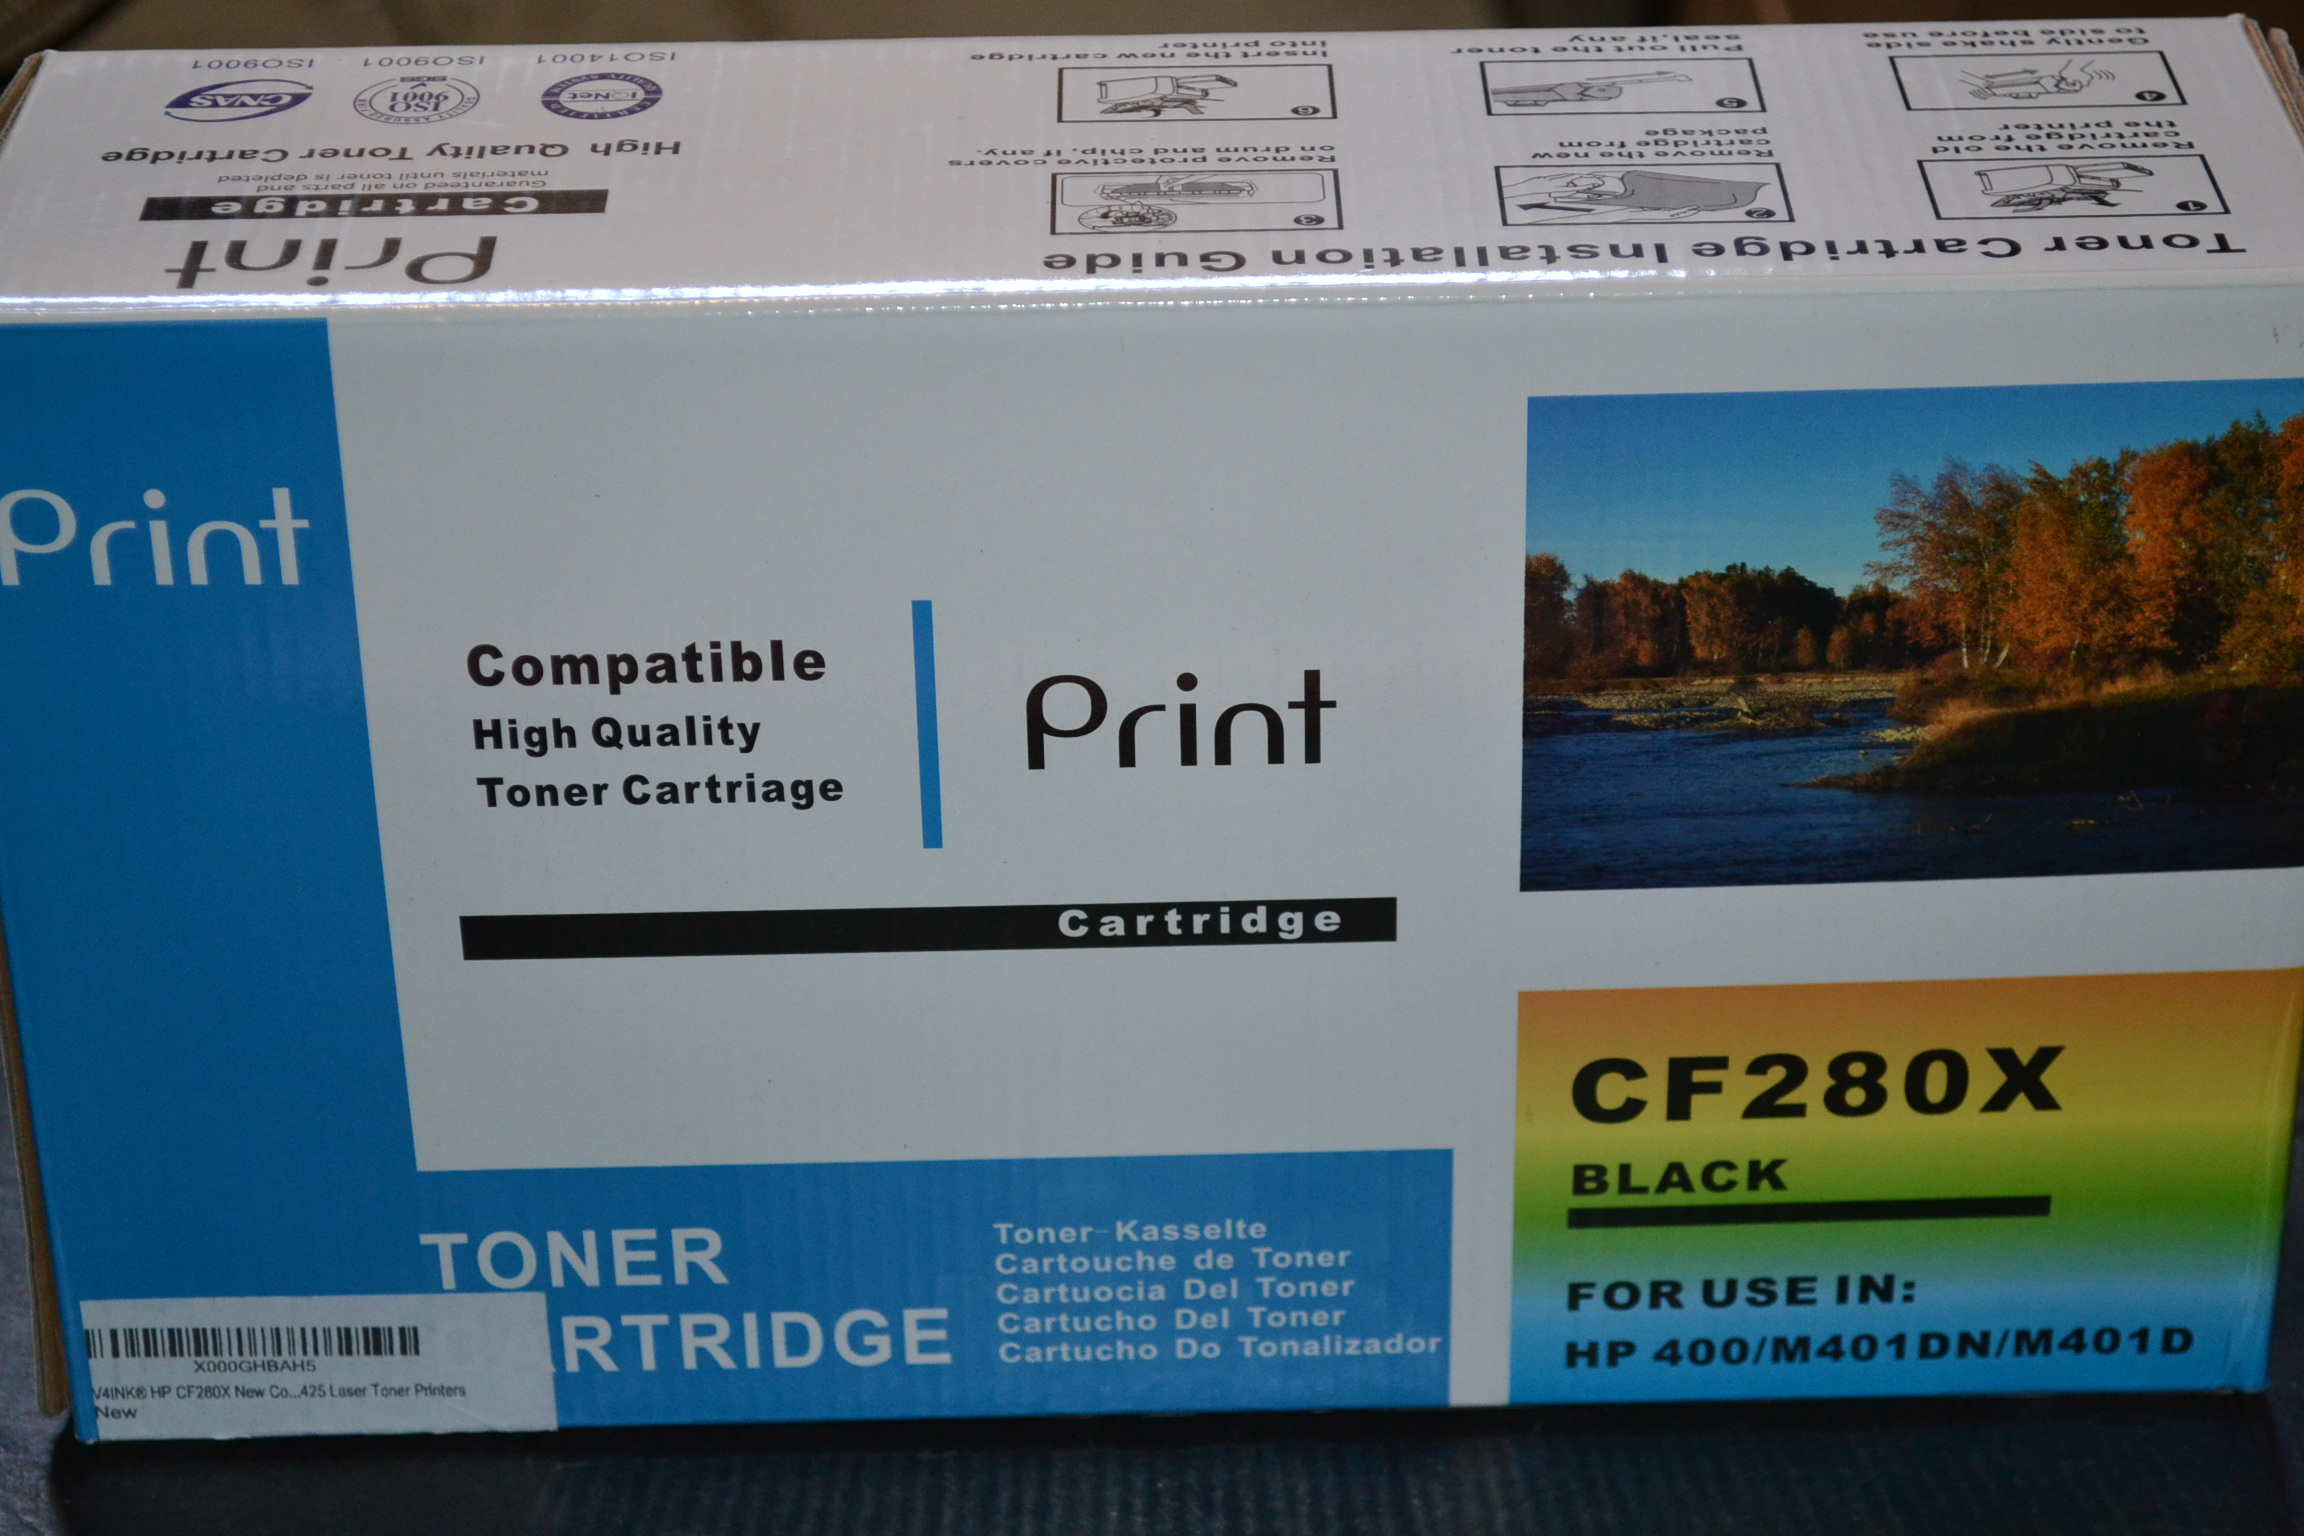 CF280X Toner Cartridge for LaserJet Pro HP 400 M401DN M401D Black